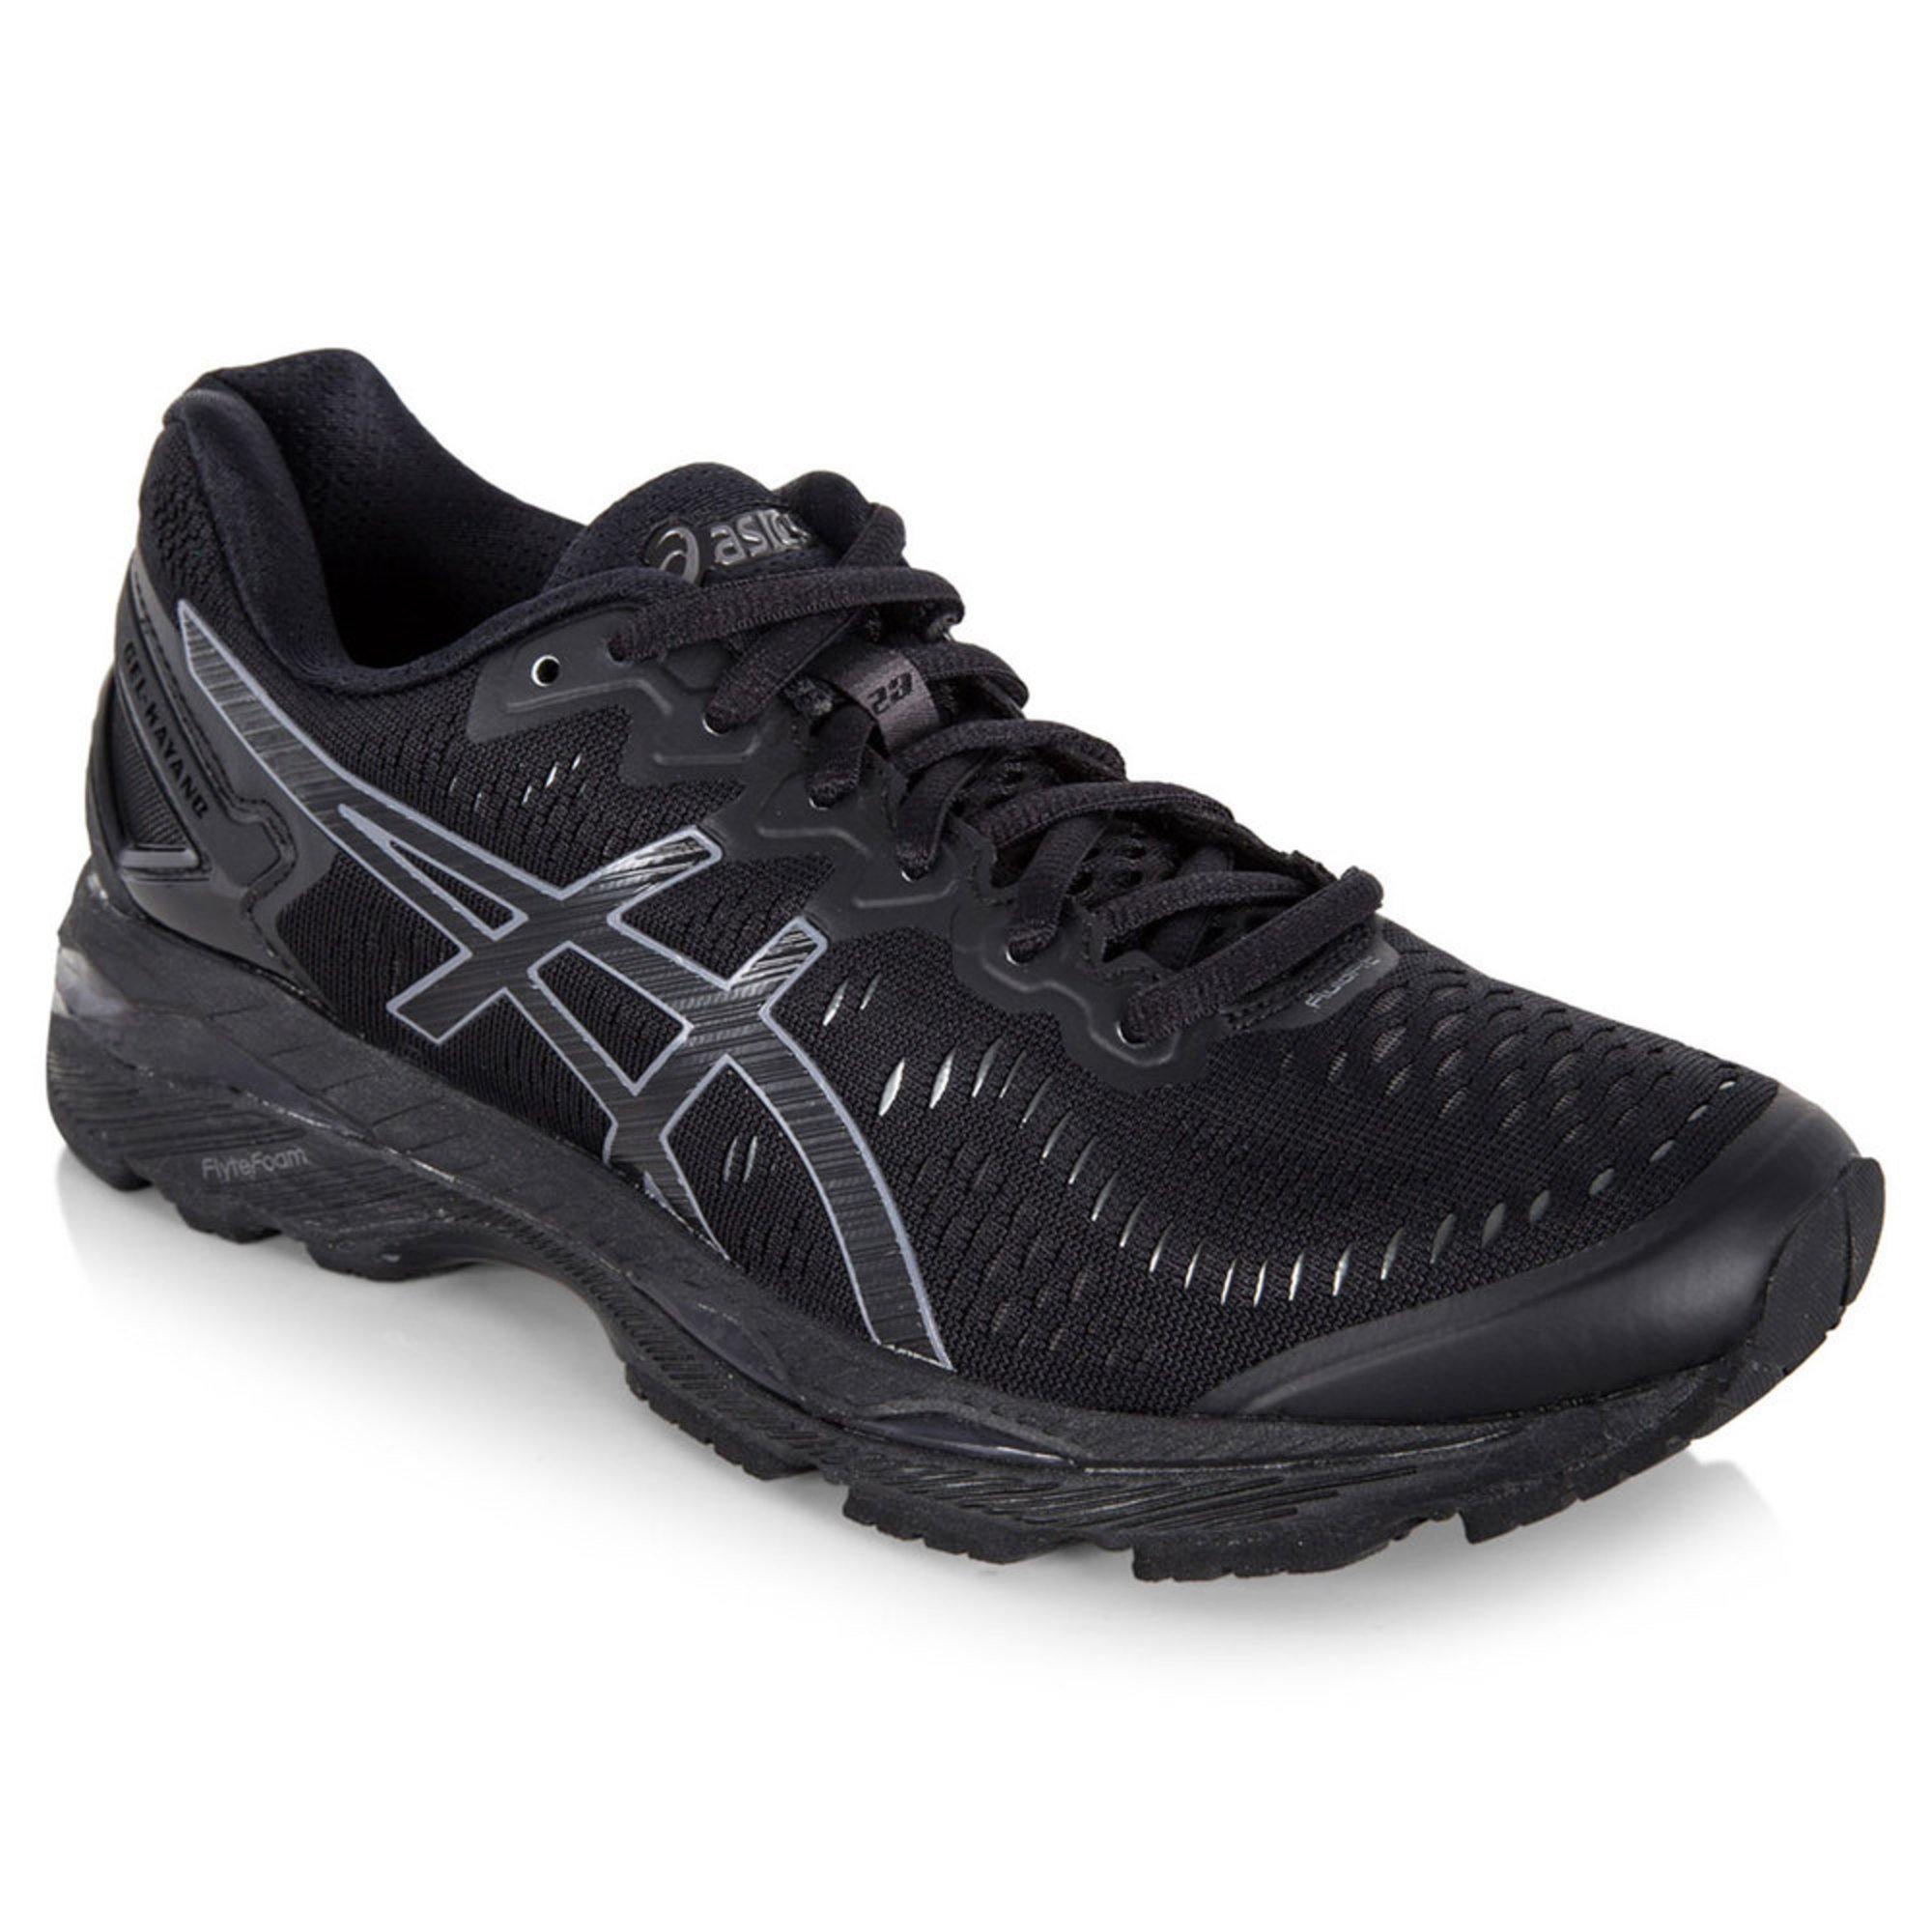 Asics. Asics Gel-Kayano 23 Women's Running Shoe ...